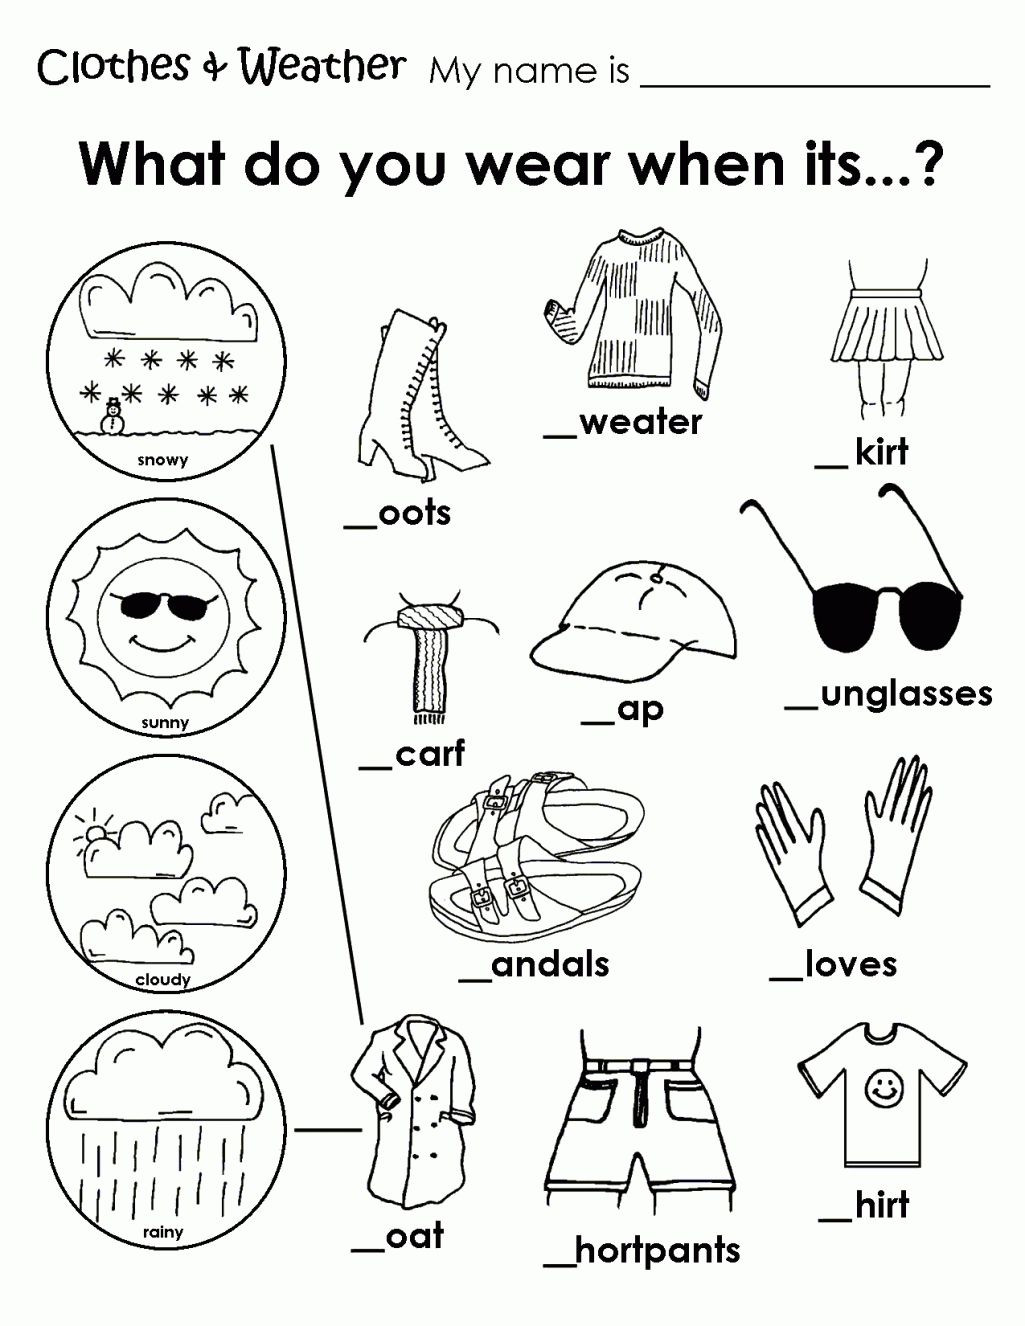 Weather Worksheets for First Graders Printable Weather Clothes Worksheet